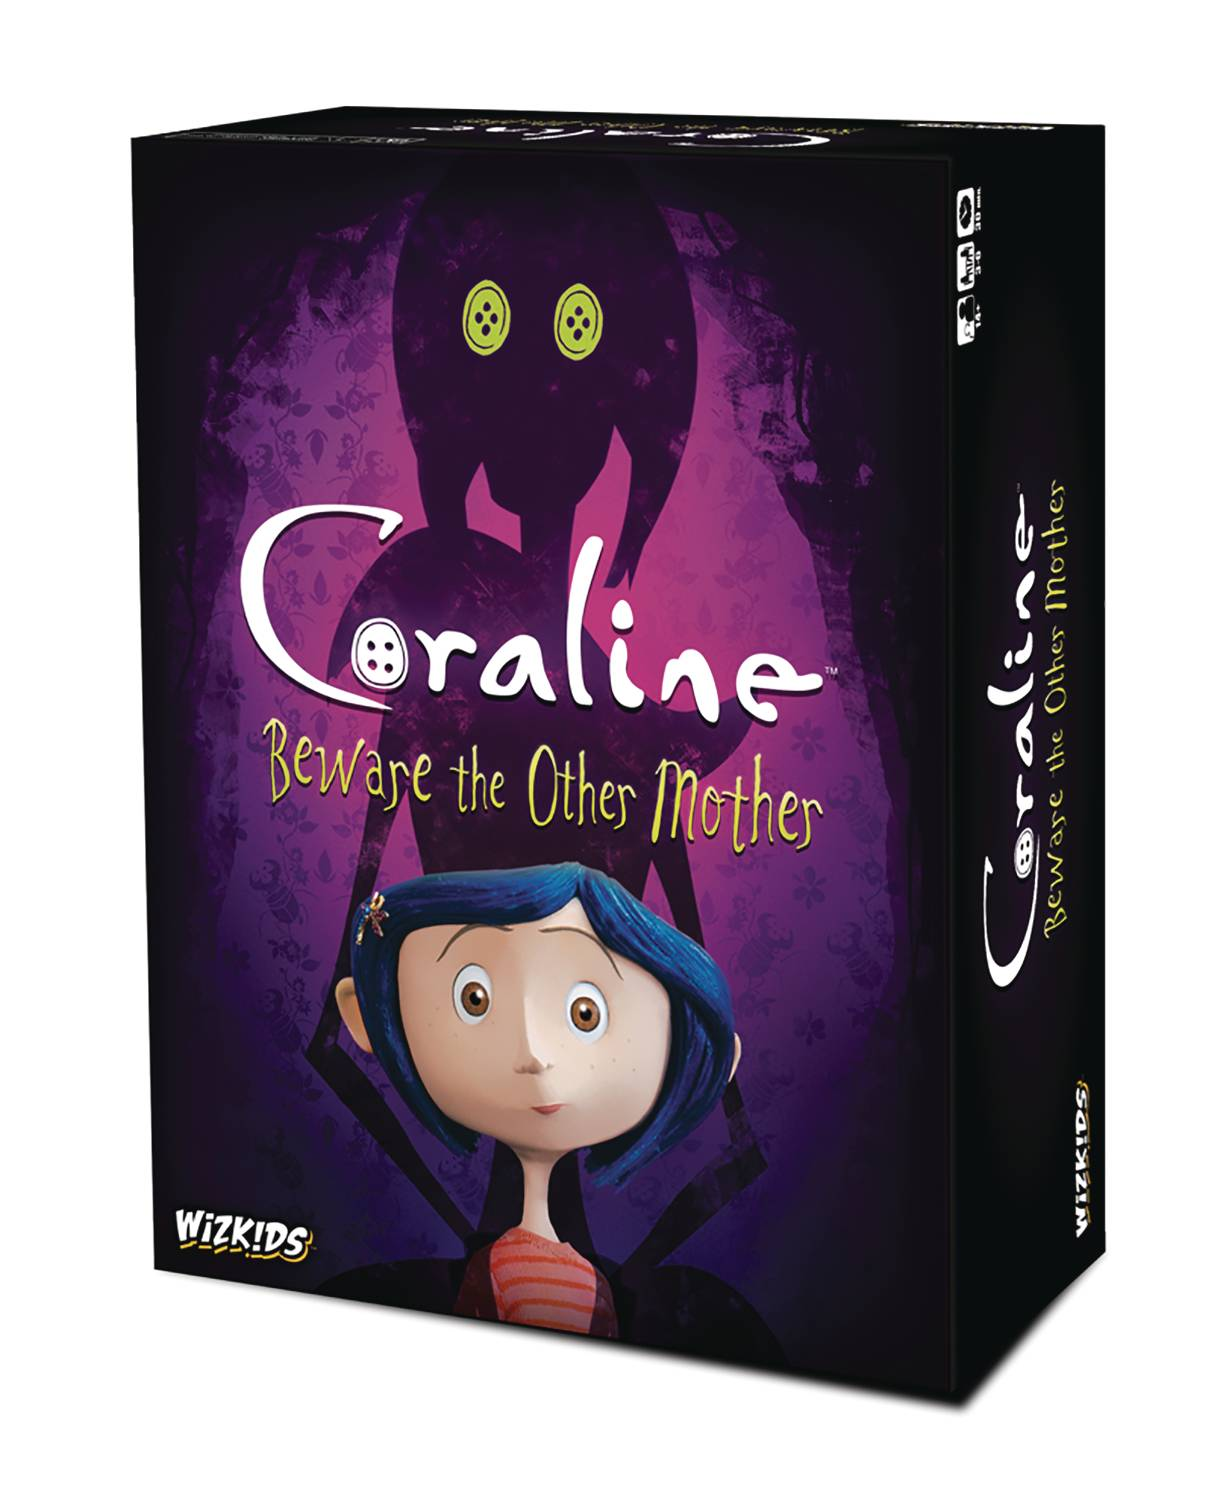 CORALINE BEWARE OTHER MOTHER BOARD GAME